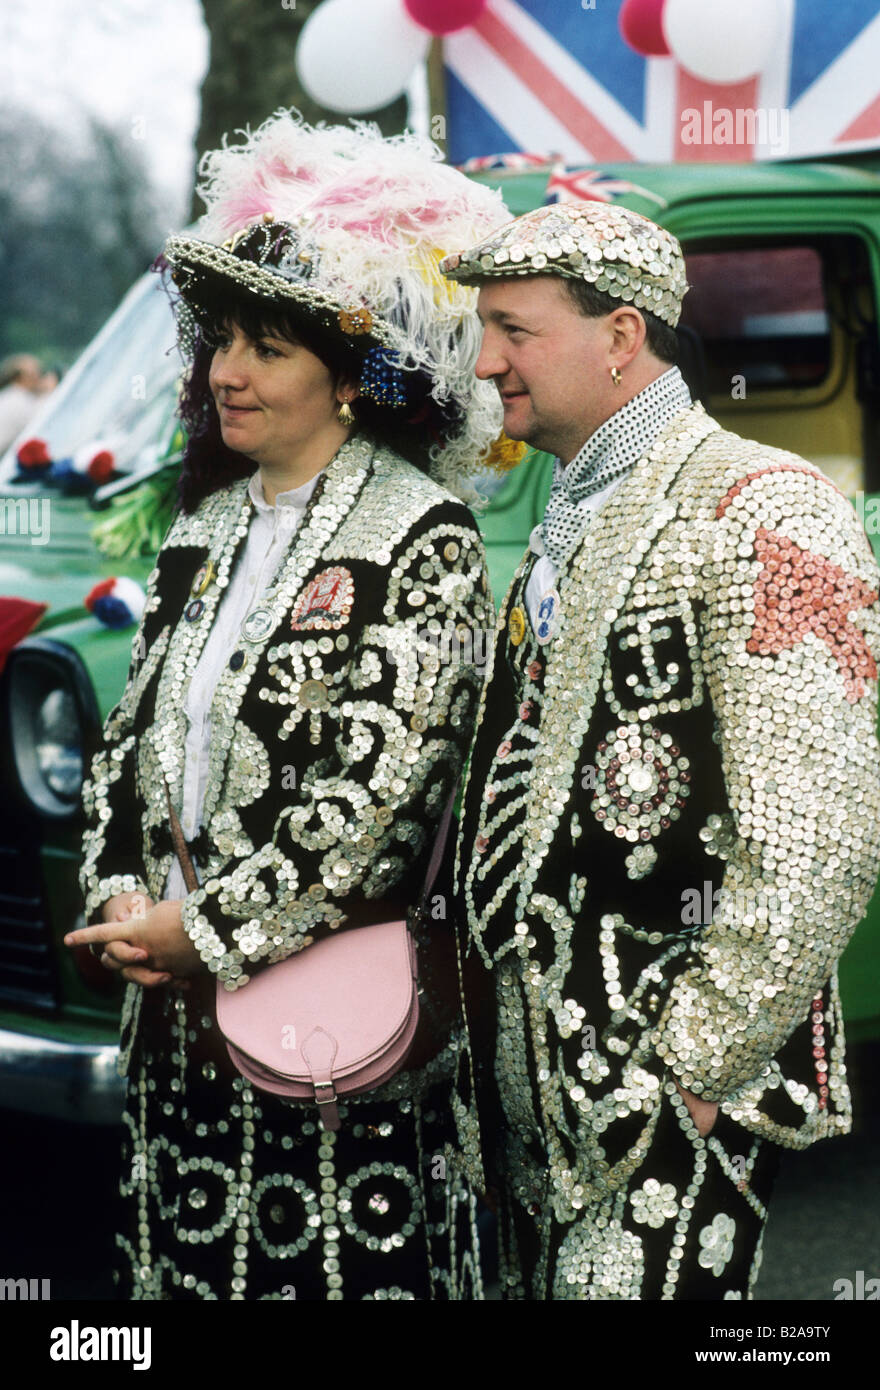 Pearly Kings Queens Pearlies traditional costume Cockney English tradition man woman couple London England UK - Stock Image